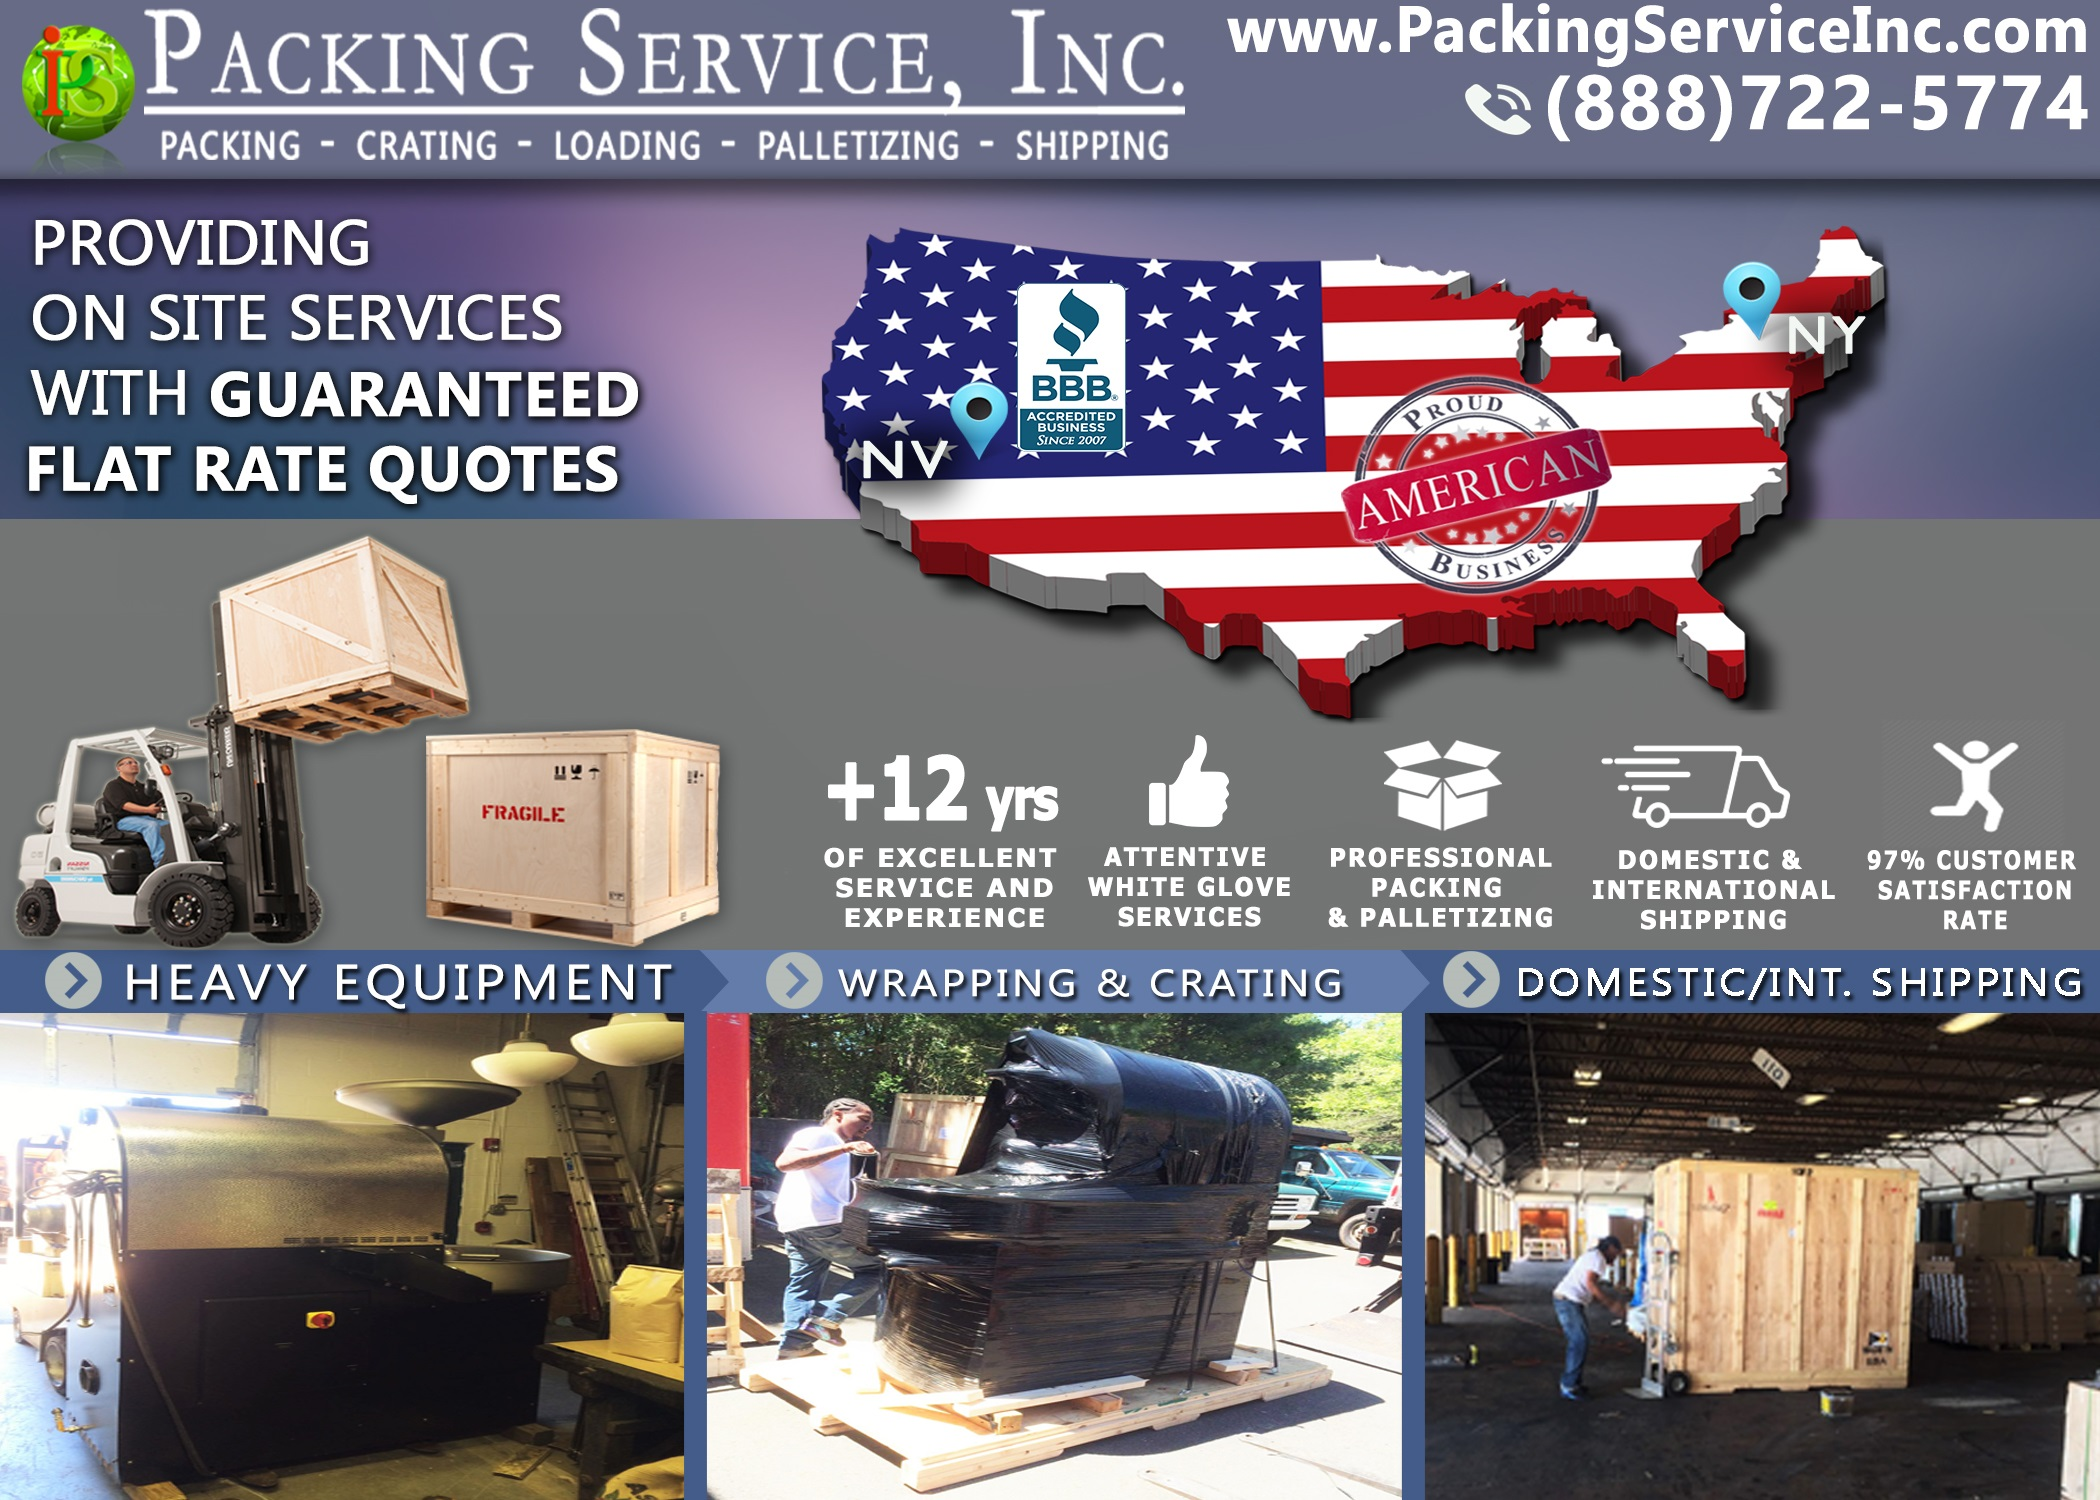 Crating and Shipping from Nevada to New York with Packing Service, Inc. - 591